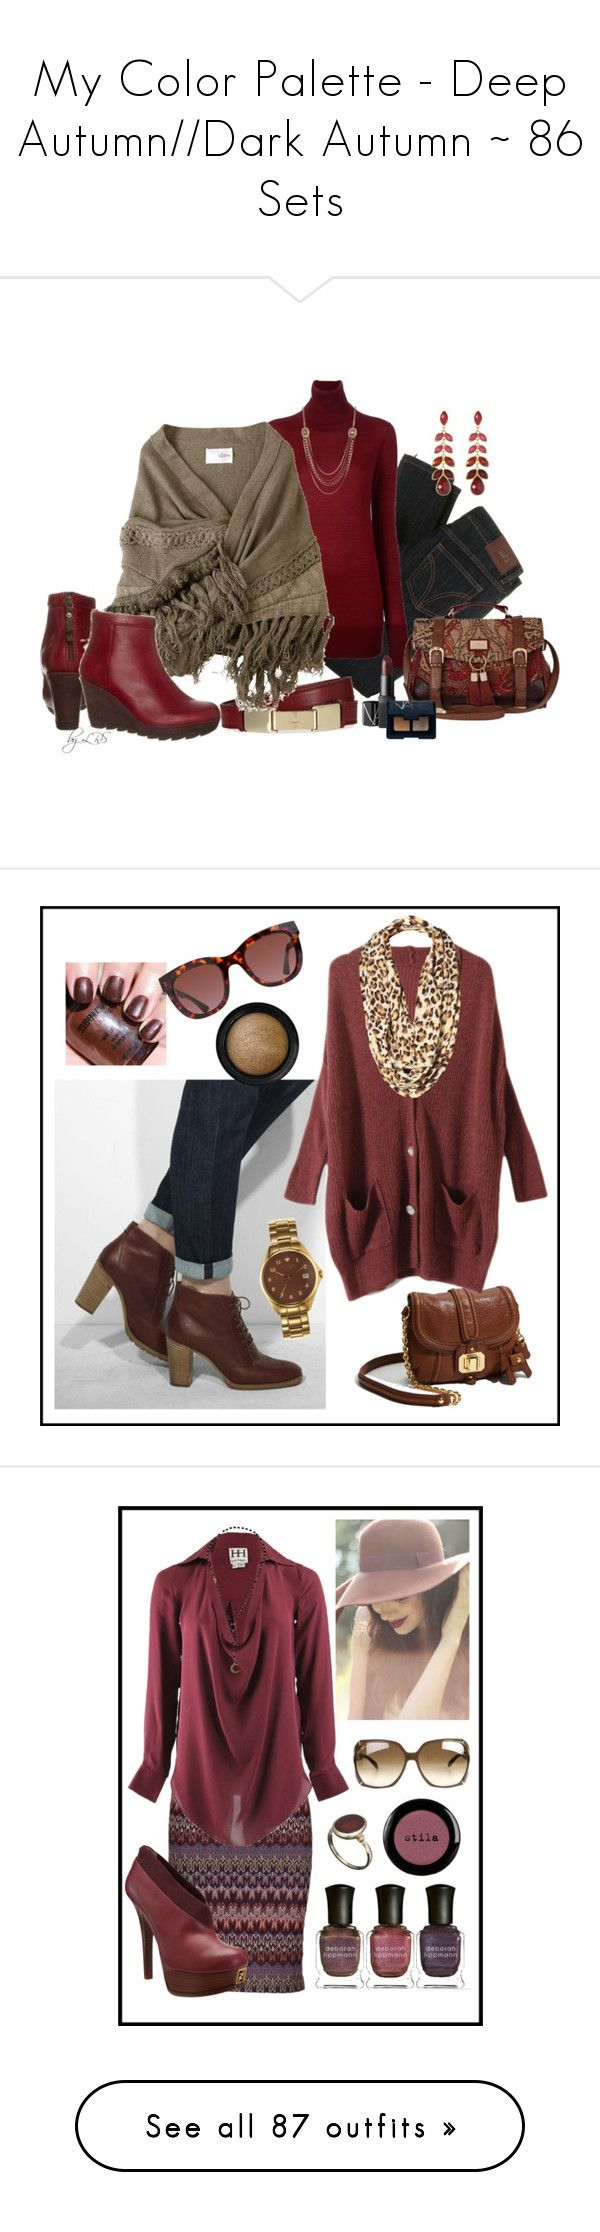 """My Color Palette - Deep Autumn//Dark Autumn ~ 86 Sets"" by venuskoenig ❤ liked on Polyvore featuring tops, outerwear, cardigans, jackets, sweaters, women, style poncho, kenzo, brown poncho and home"